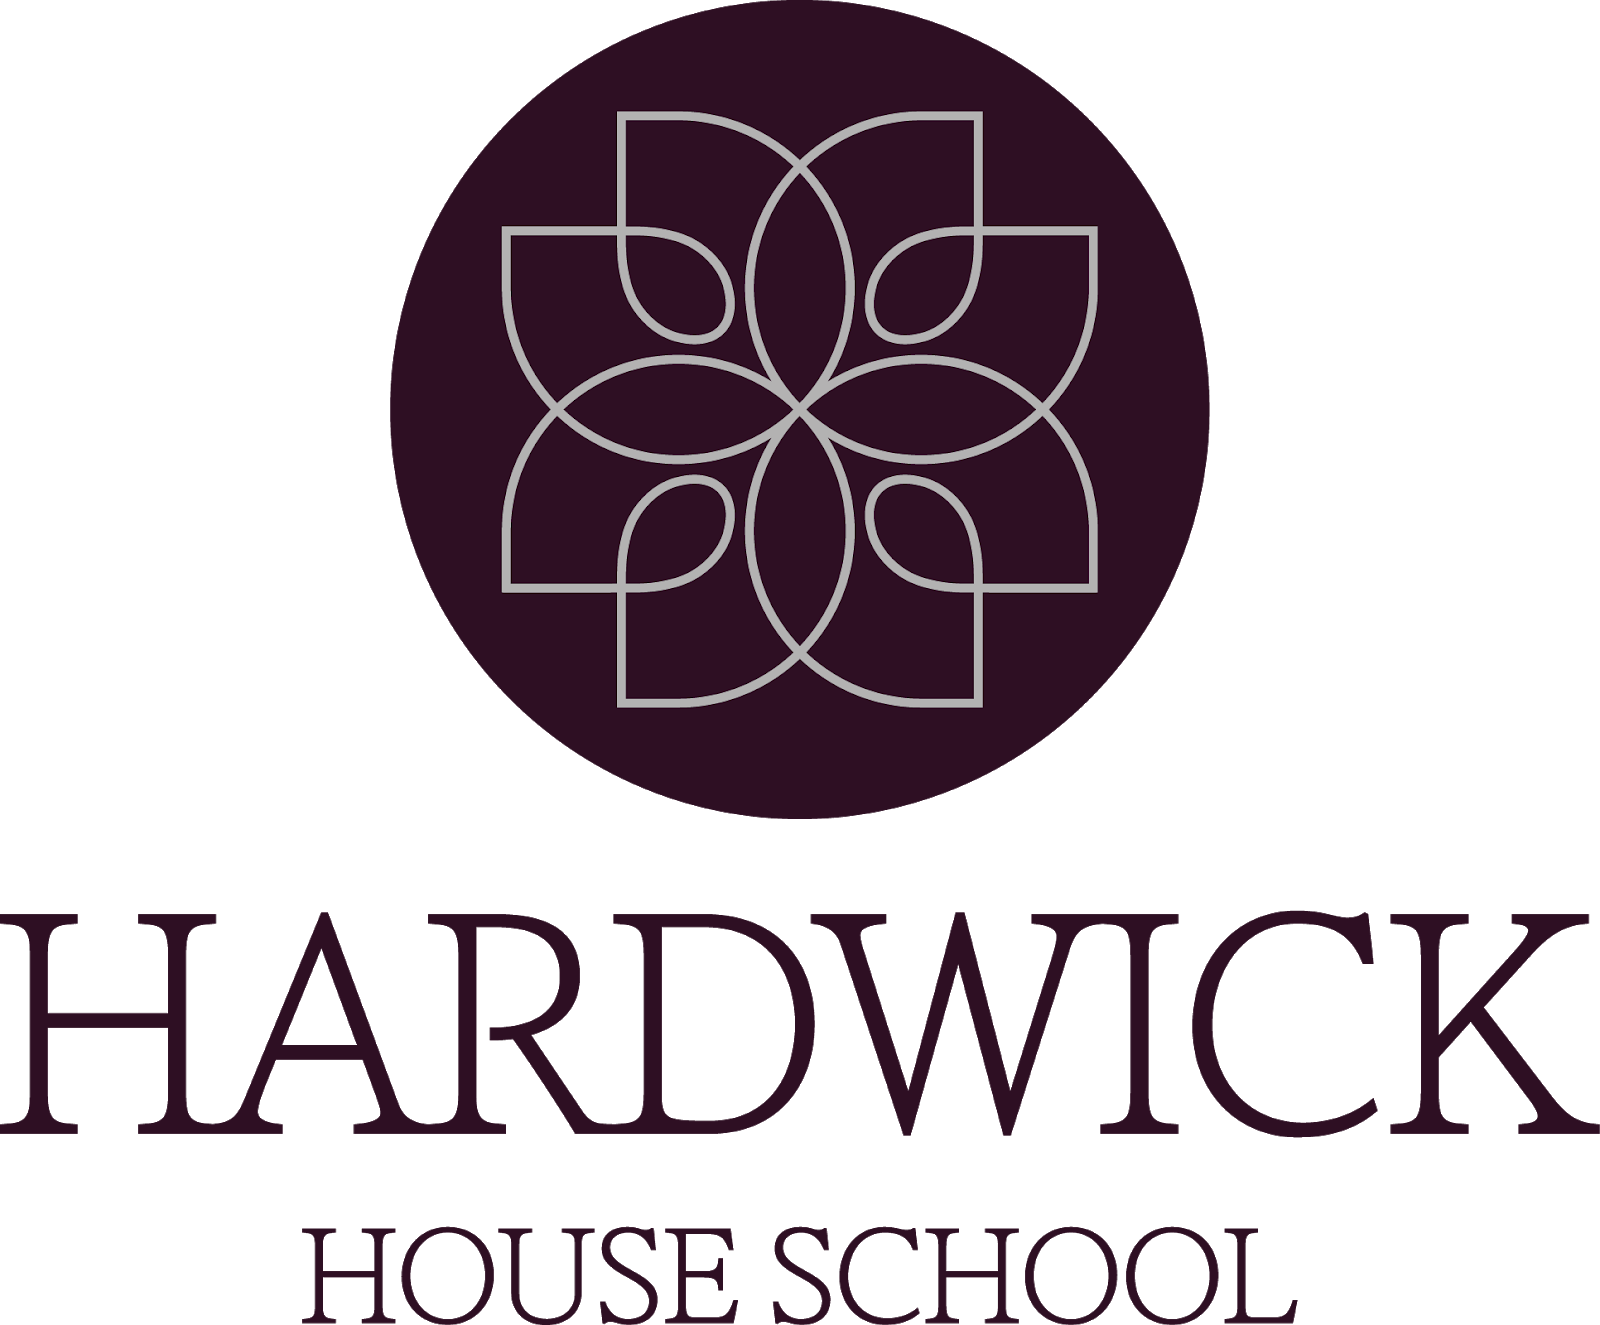 Hardwick House School